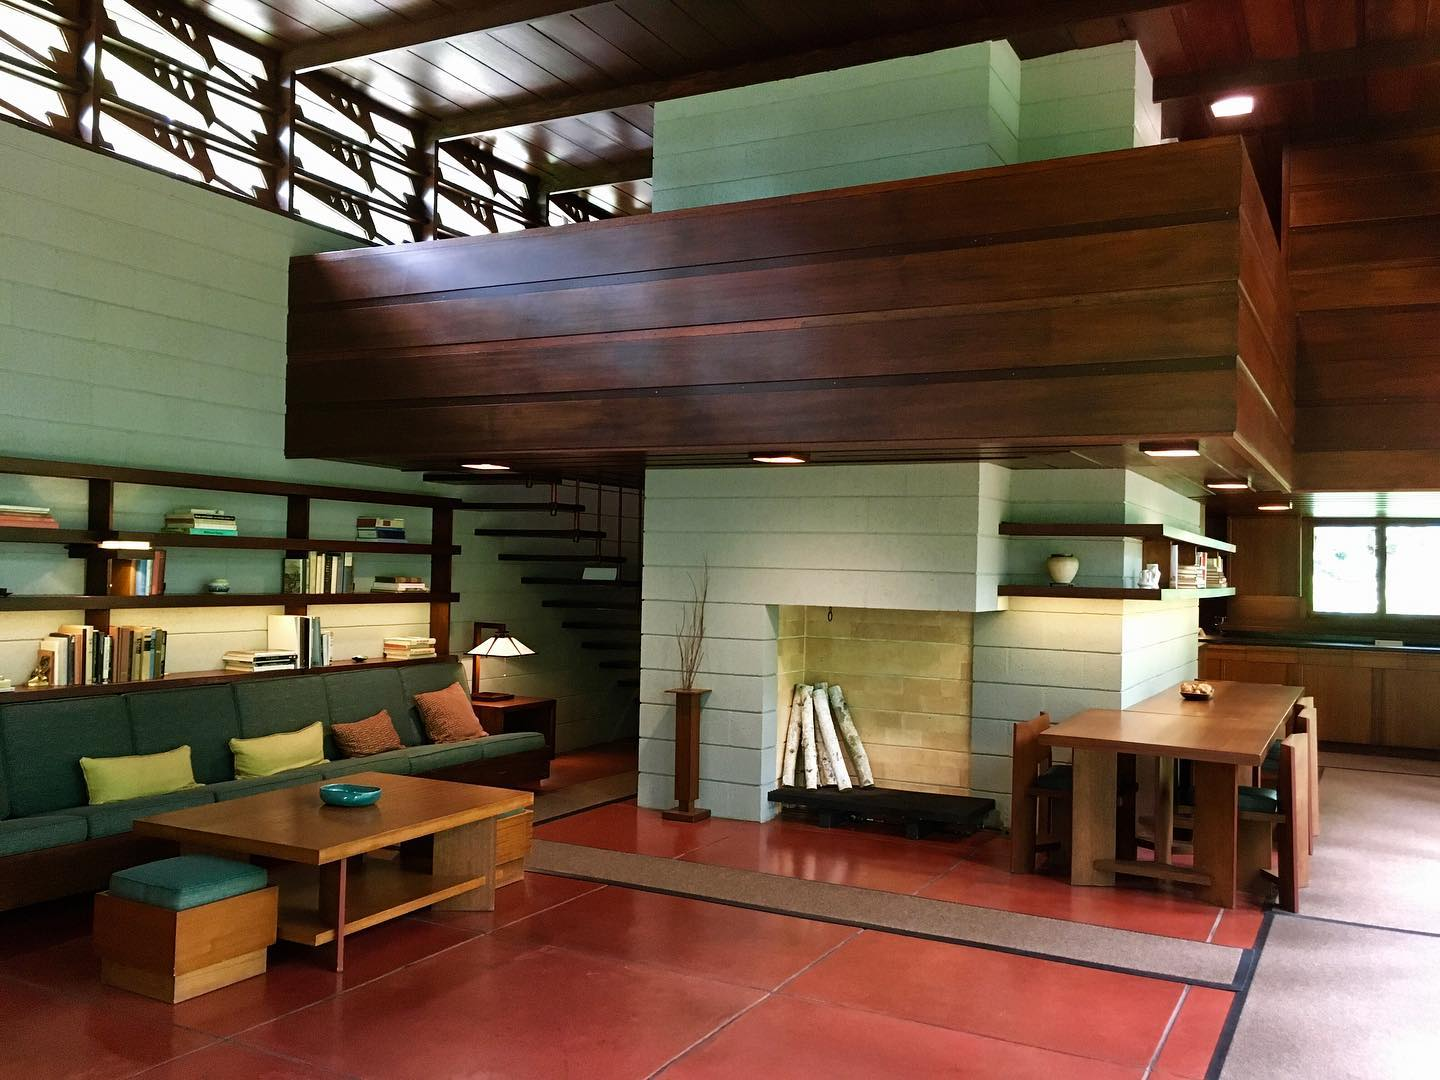 Dream home in Bentonville, AR. Bachman-Wilson House by Frank Lloyd Wright.